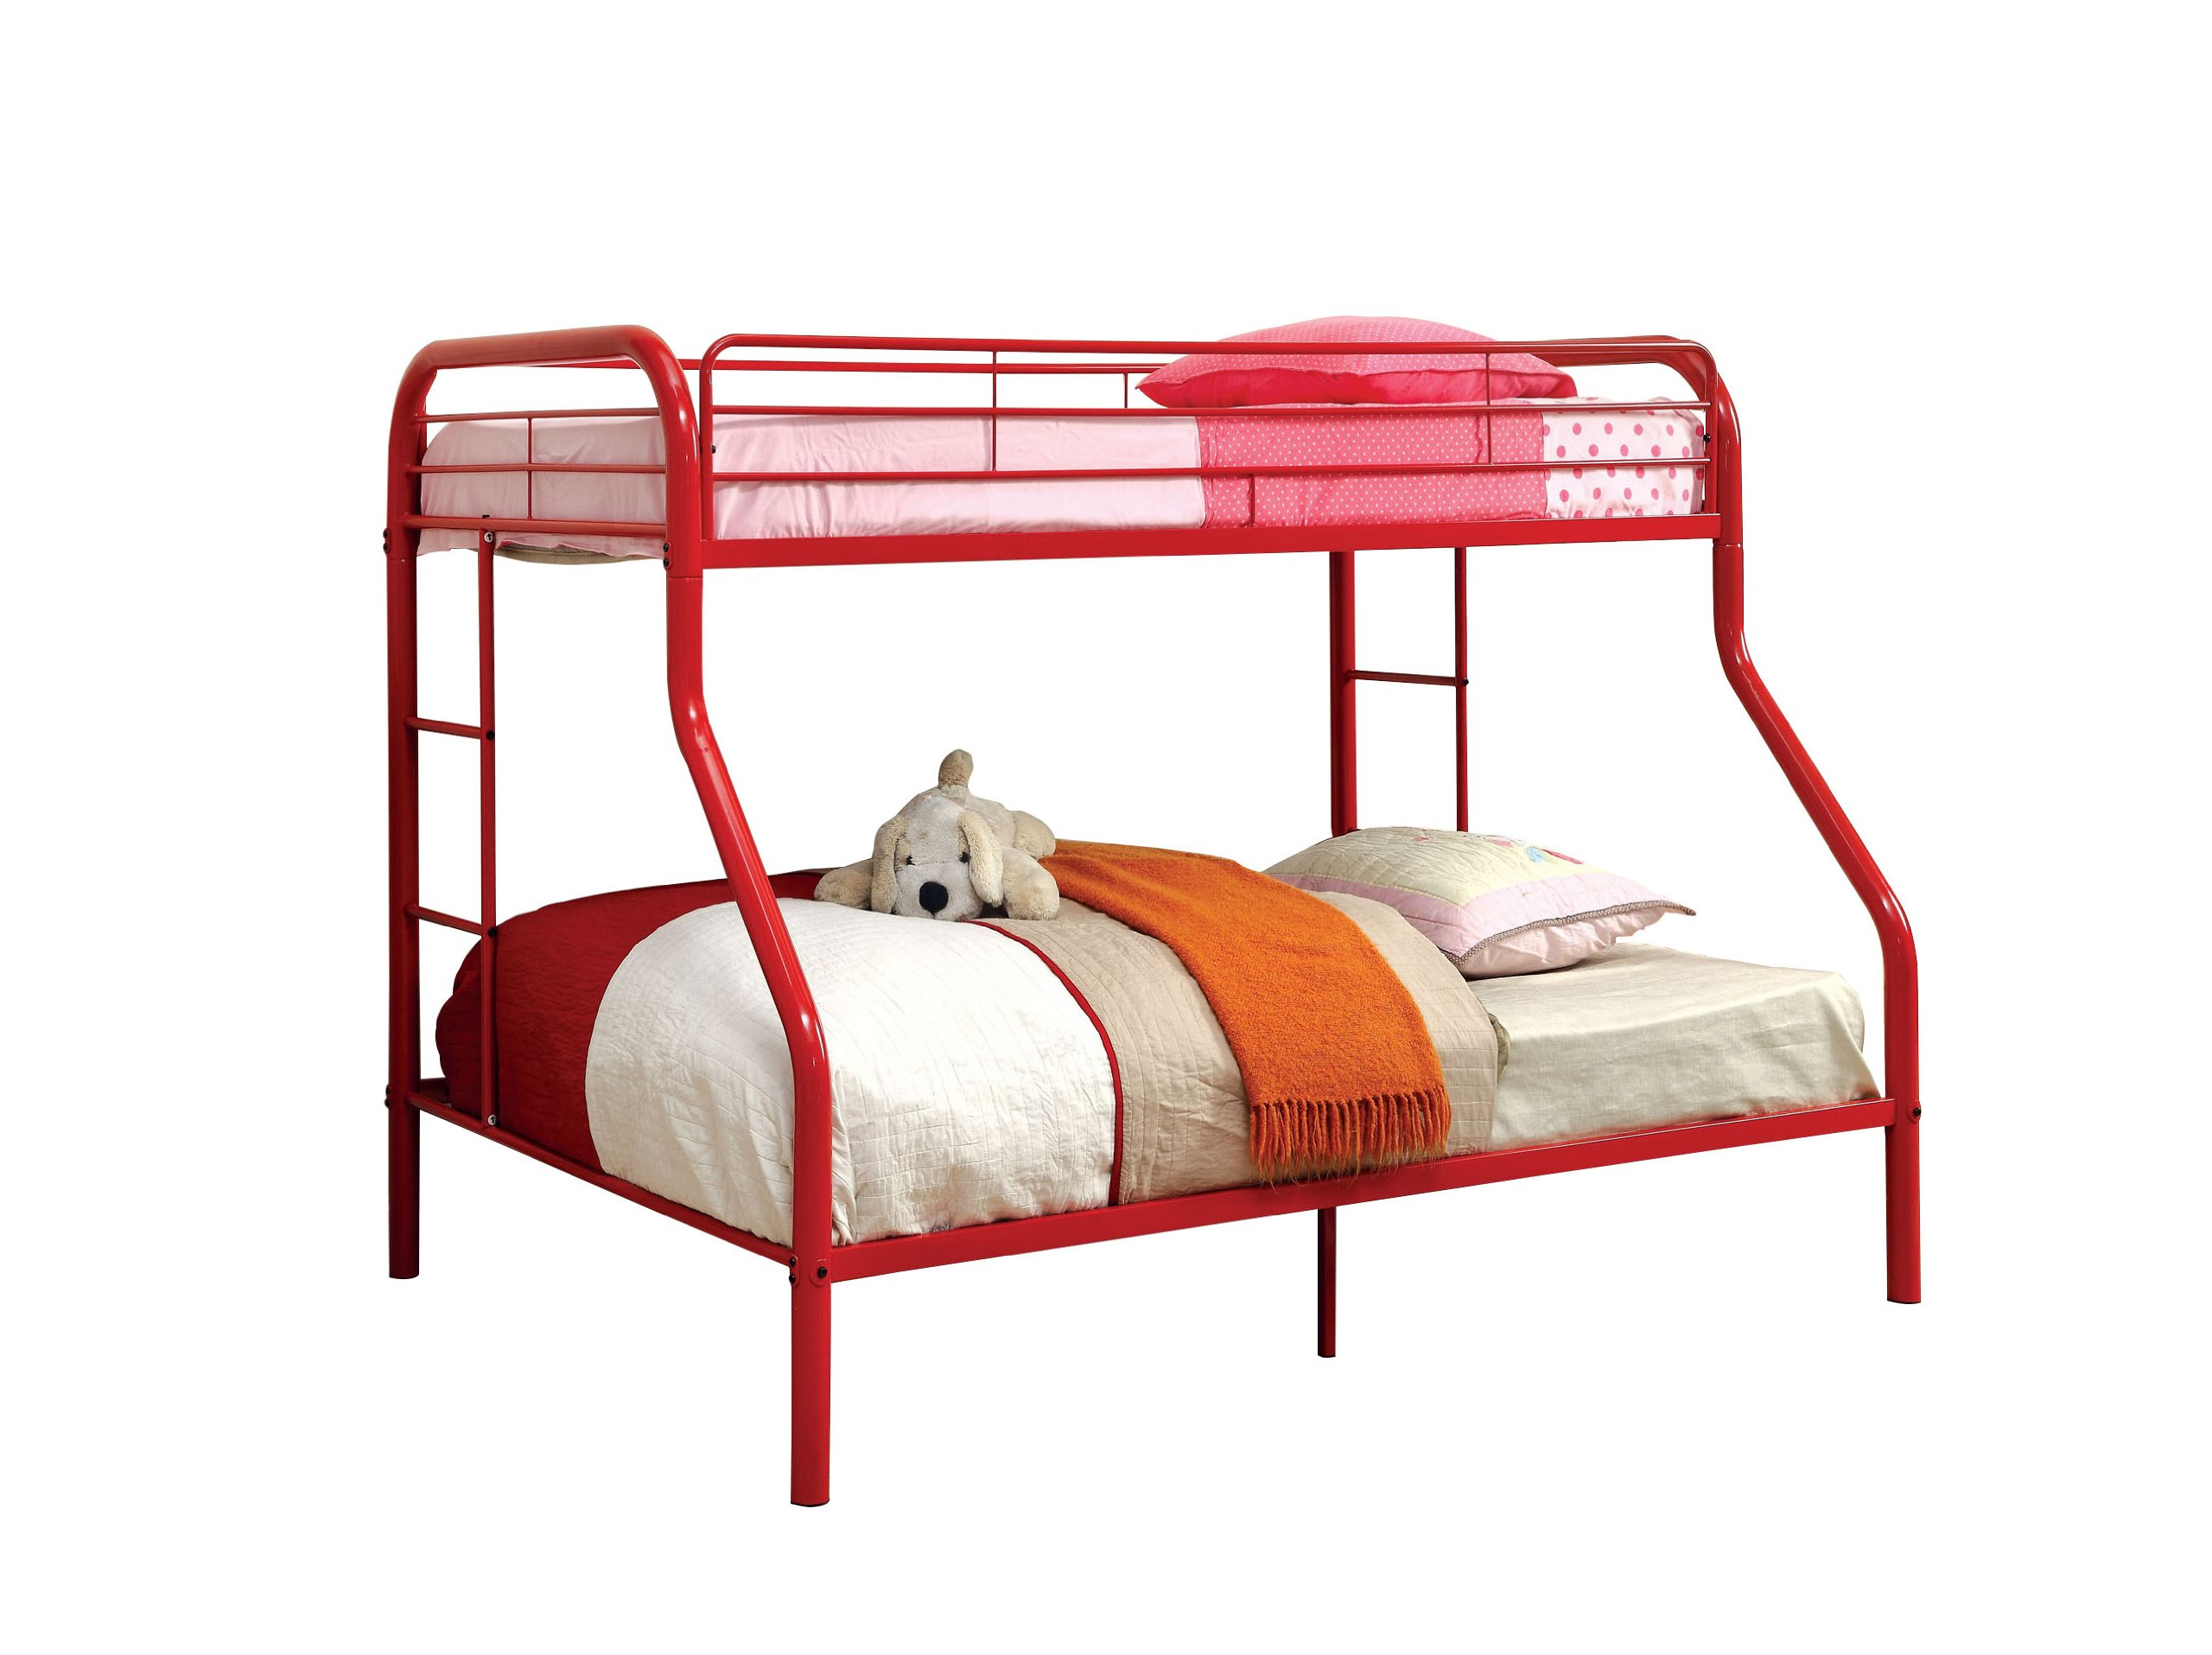 Furniture of America Non-Recycled Metal Bunk Bed, Twin Over Full, Red by Furniture of America